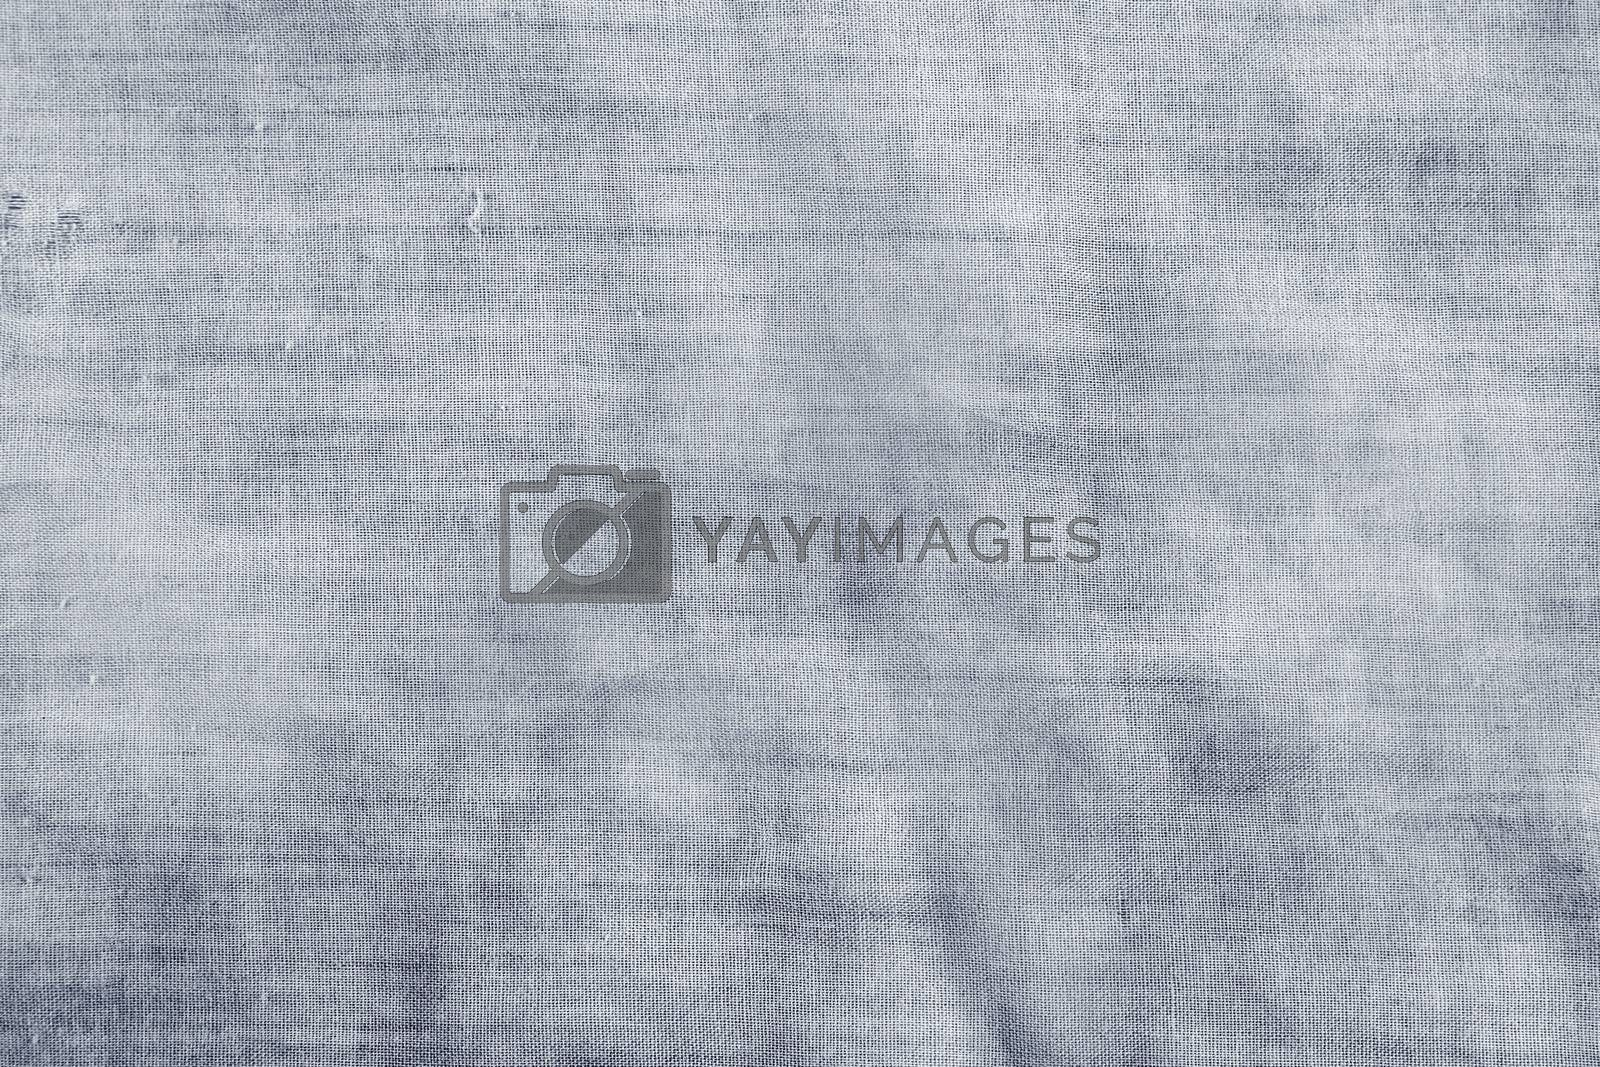 Closeup of textured surface background